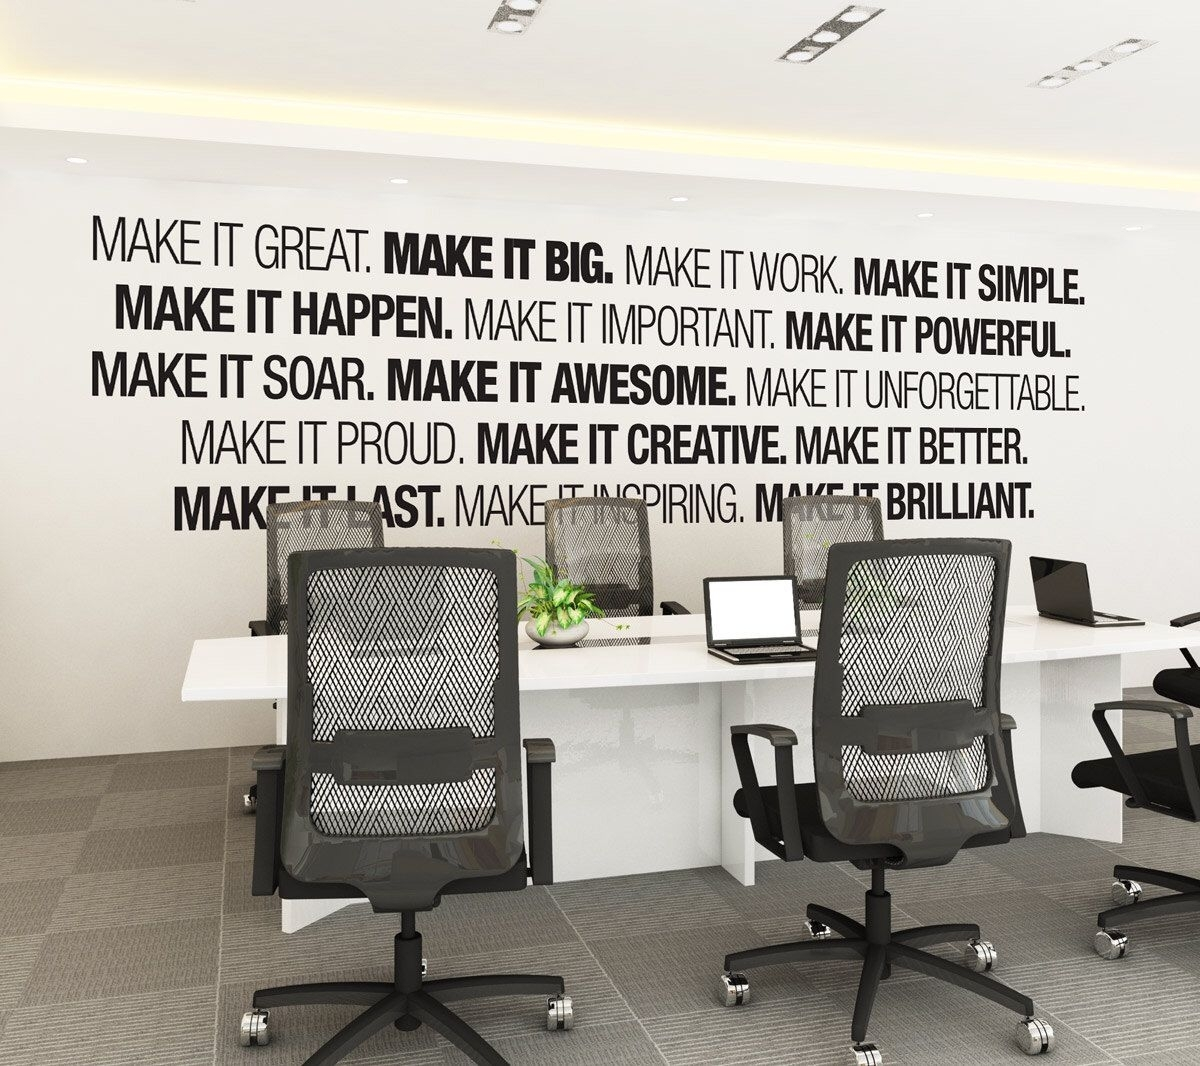 Office Wall Art - Corporate - Office Supplies - Office Decor intended for Office Wall Art (Image 9 of 20)